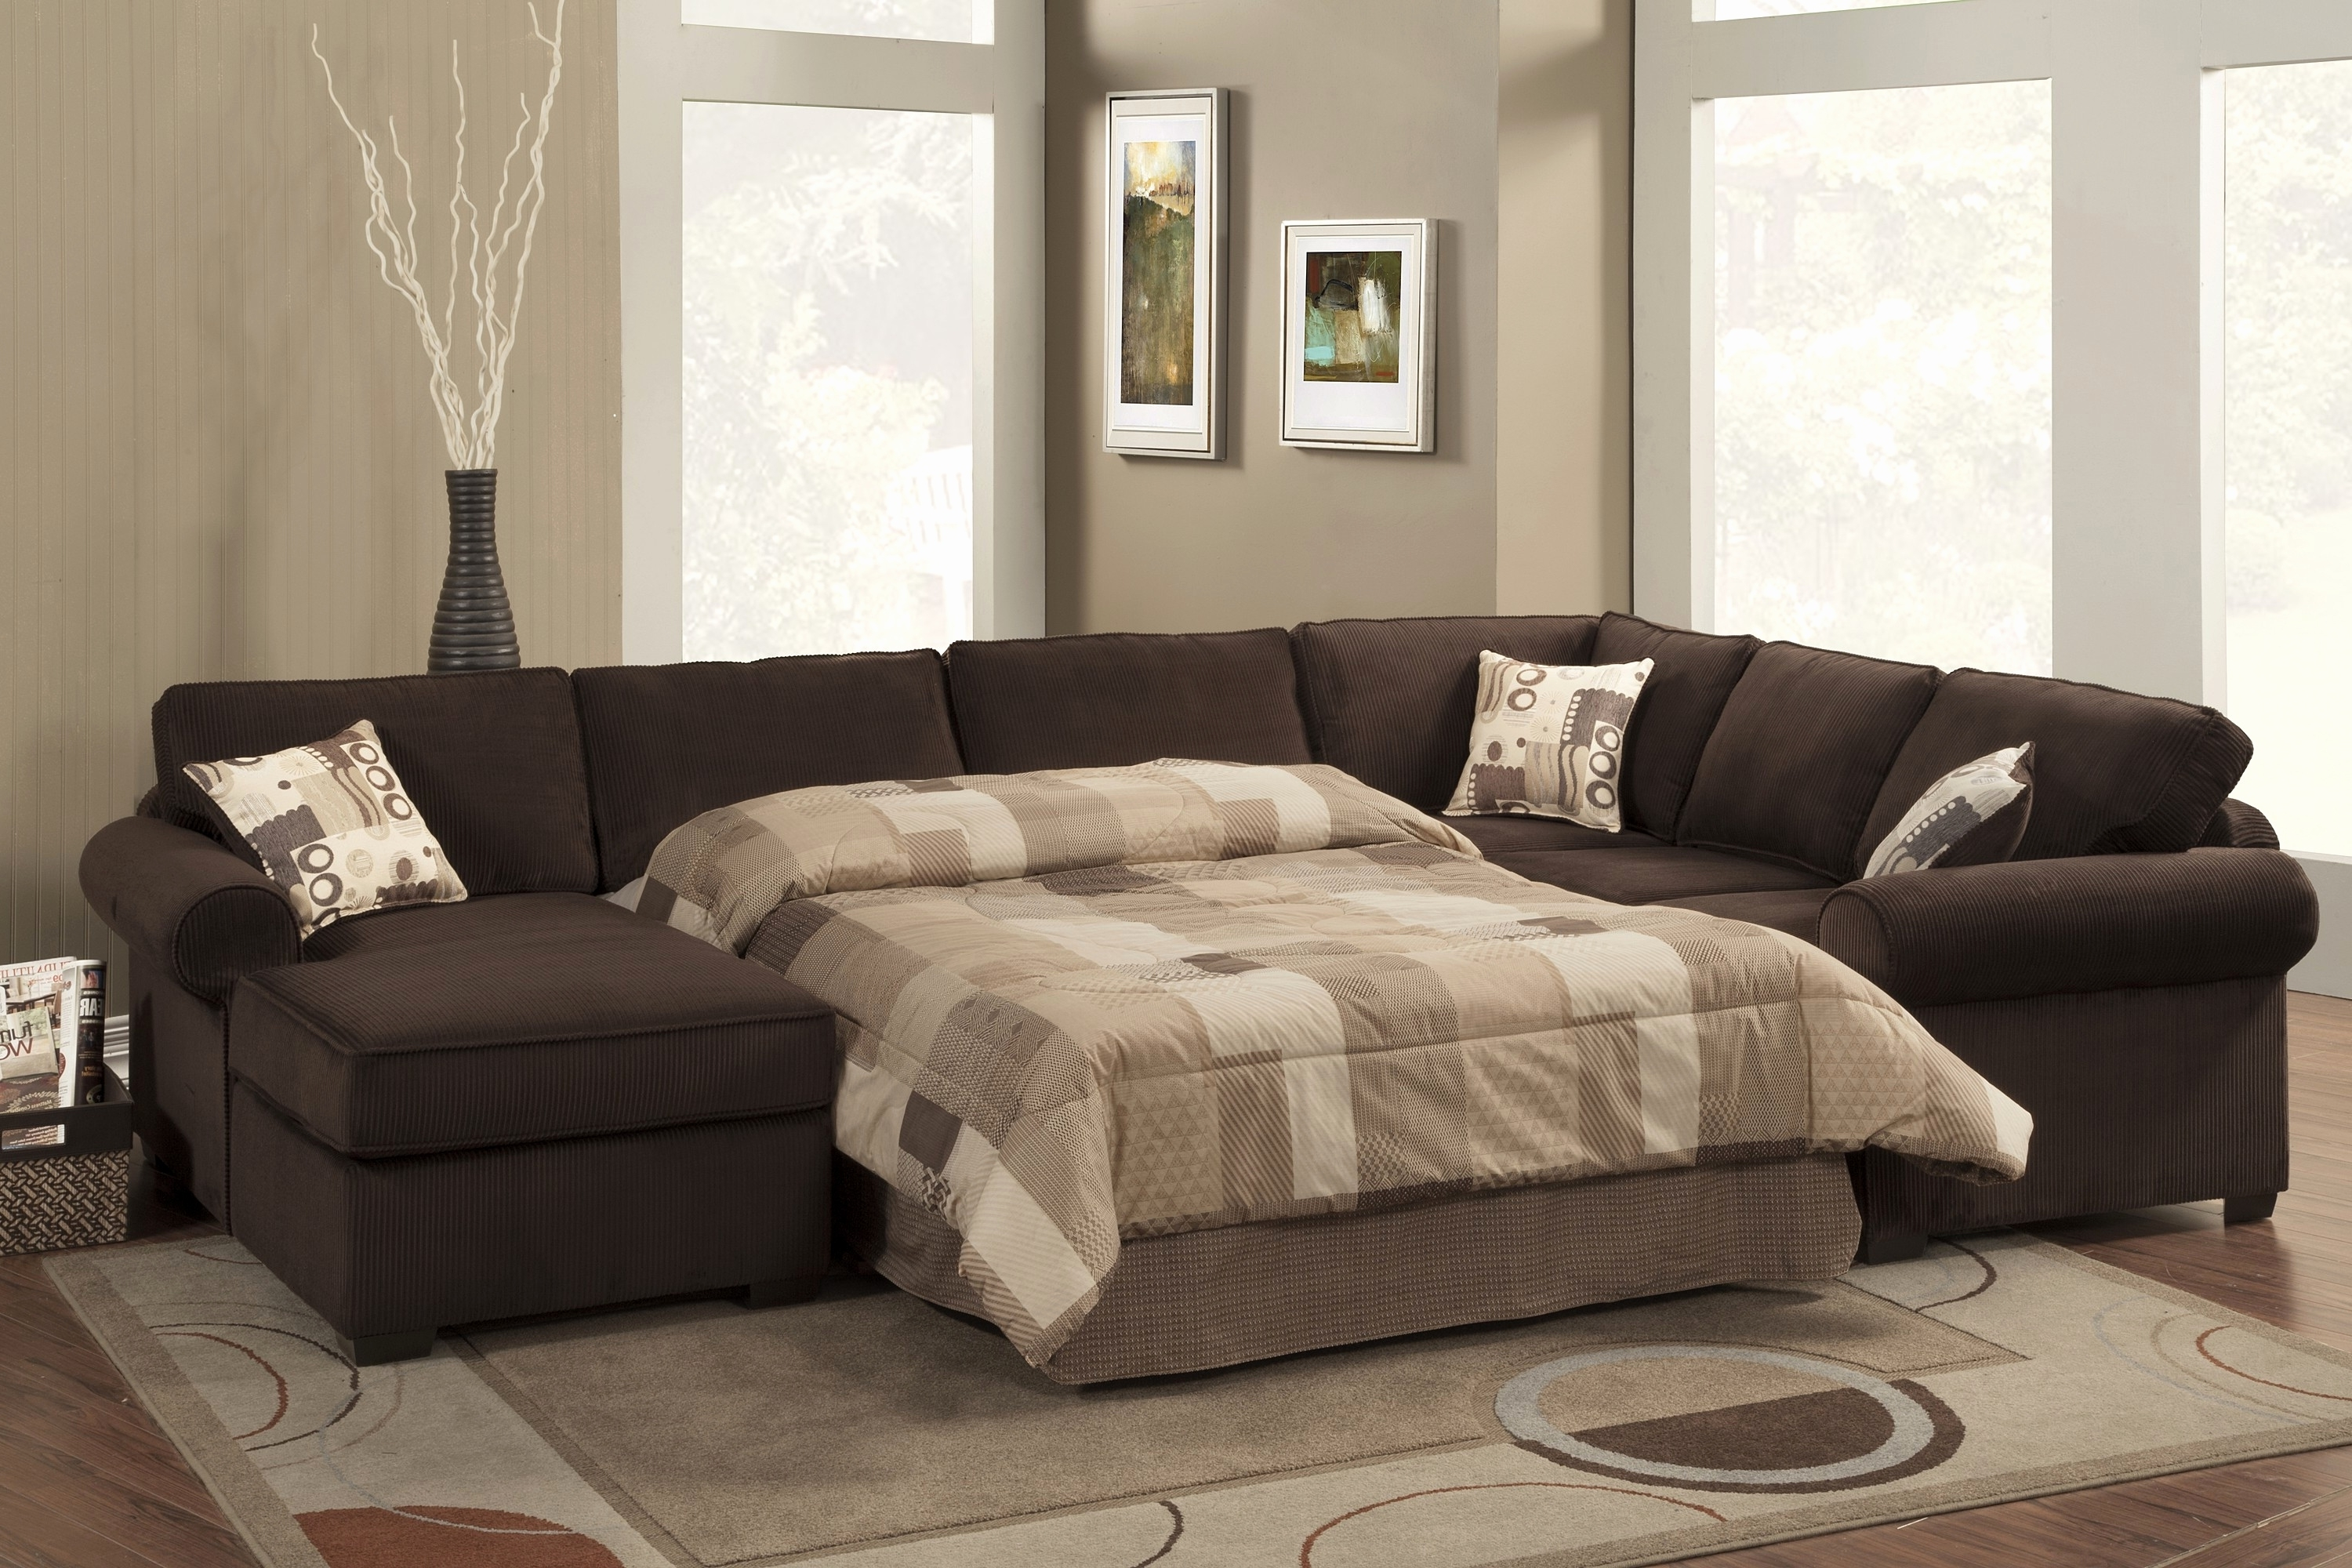 Newest Comfortable Sectional Sofas Pertaining To Sofa : Mini Sectional Sofas Small Sofas Comfortable Small (View 10 of 15)